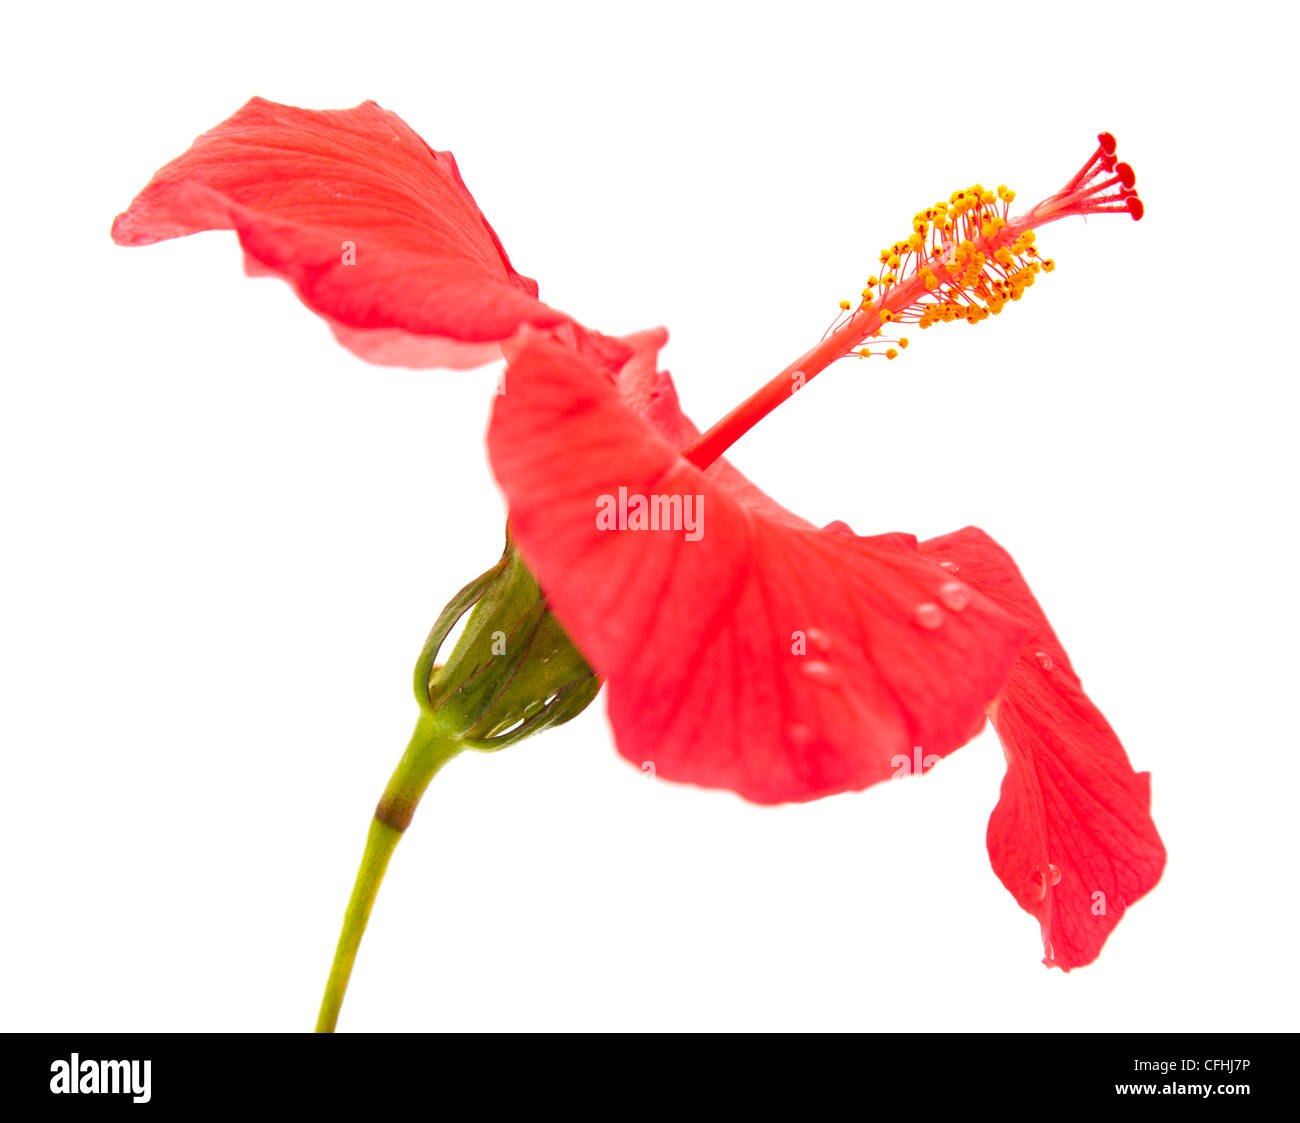 Bunga cut out stock images pictures alamy red hibiscus isolated on white background focus on style stock image ccuart Gallery